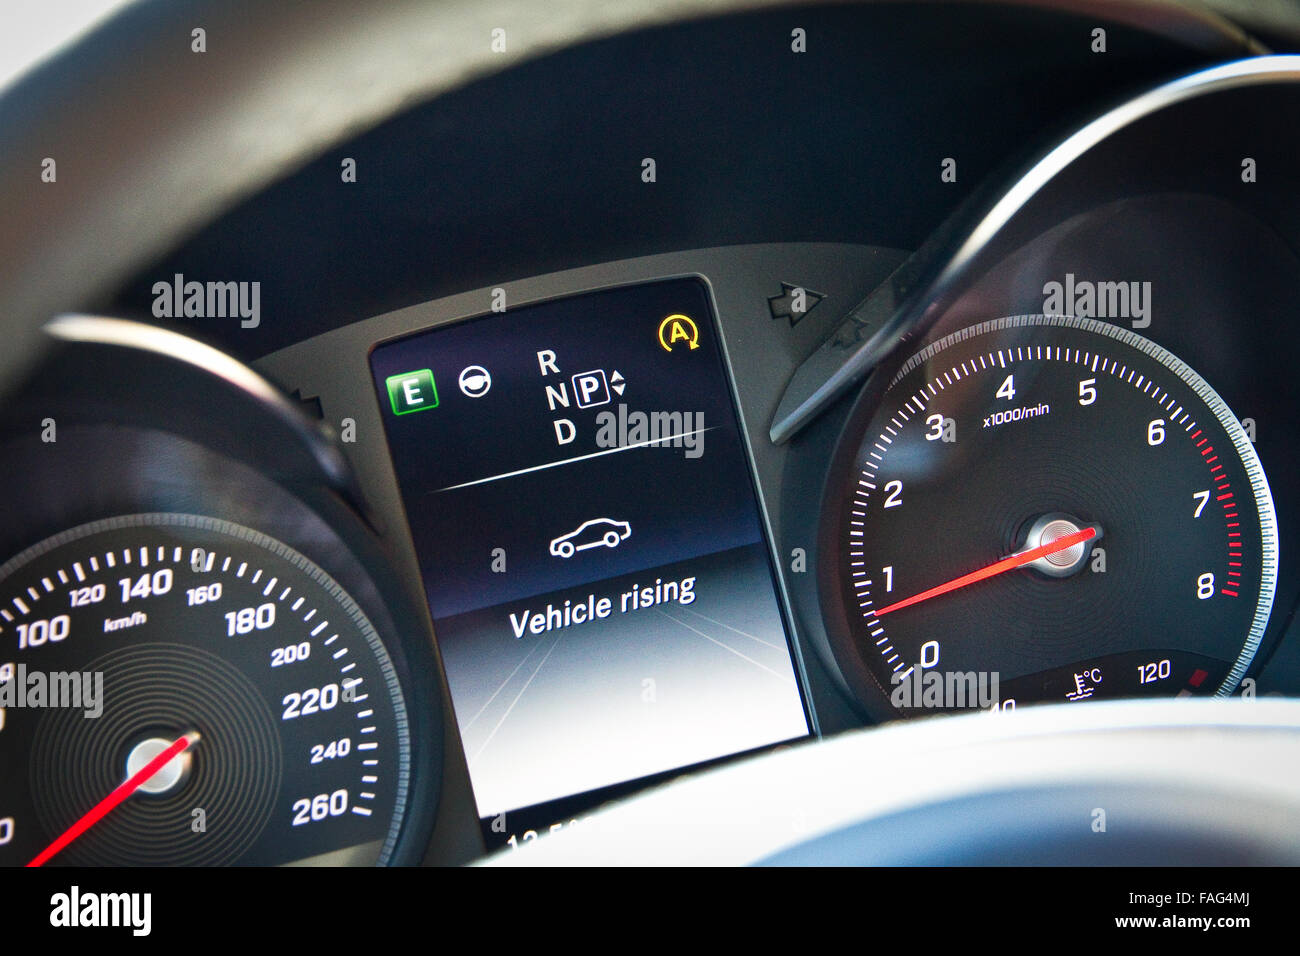 Dashboard Of Mercedes Benz Stock Photos Dashboard Of Mercedes Benz